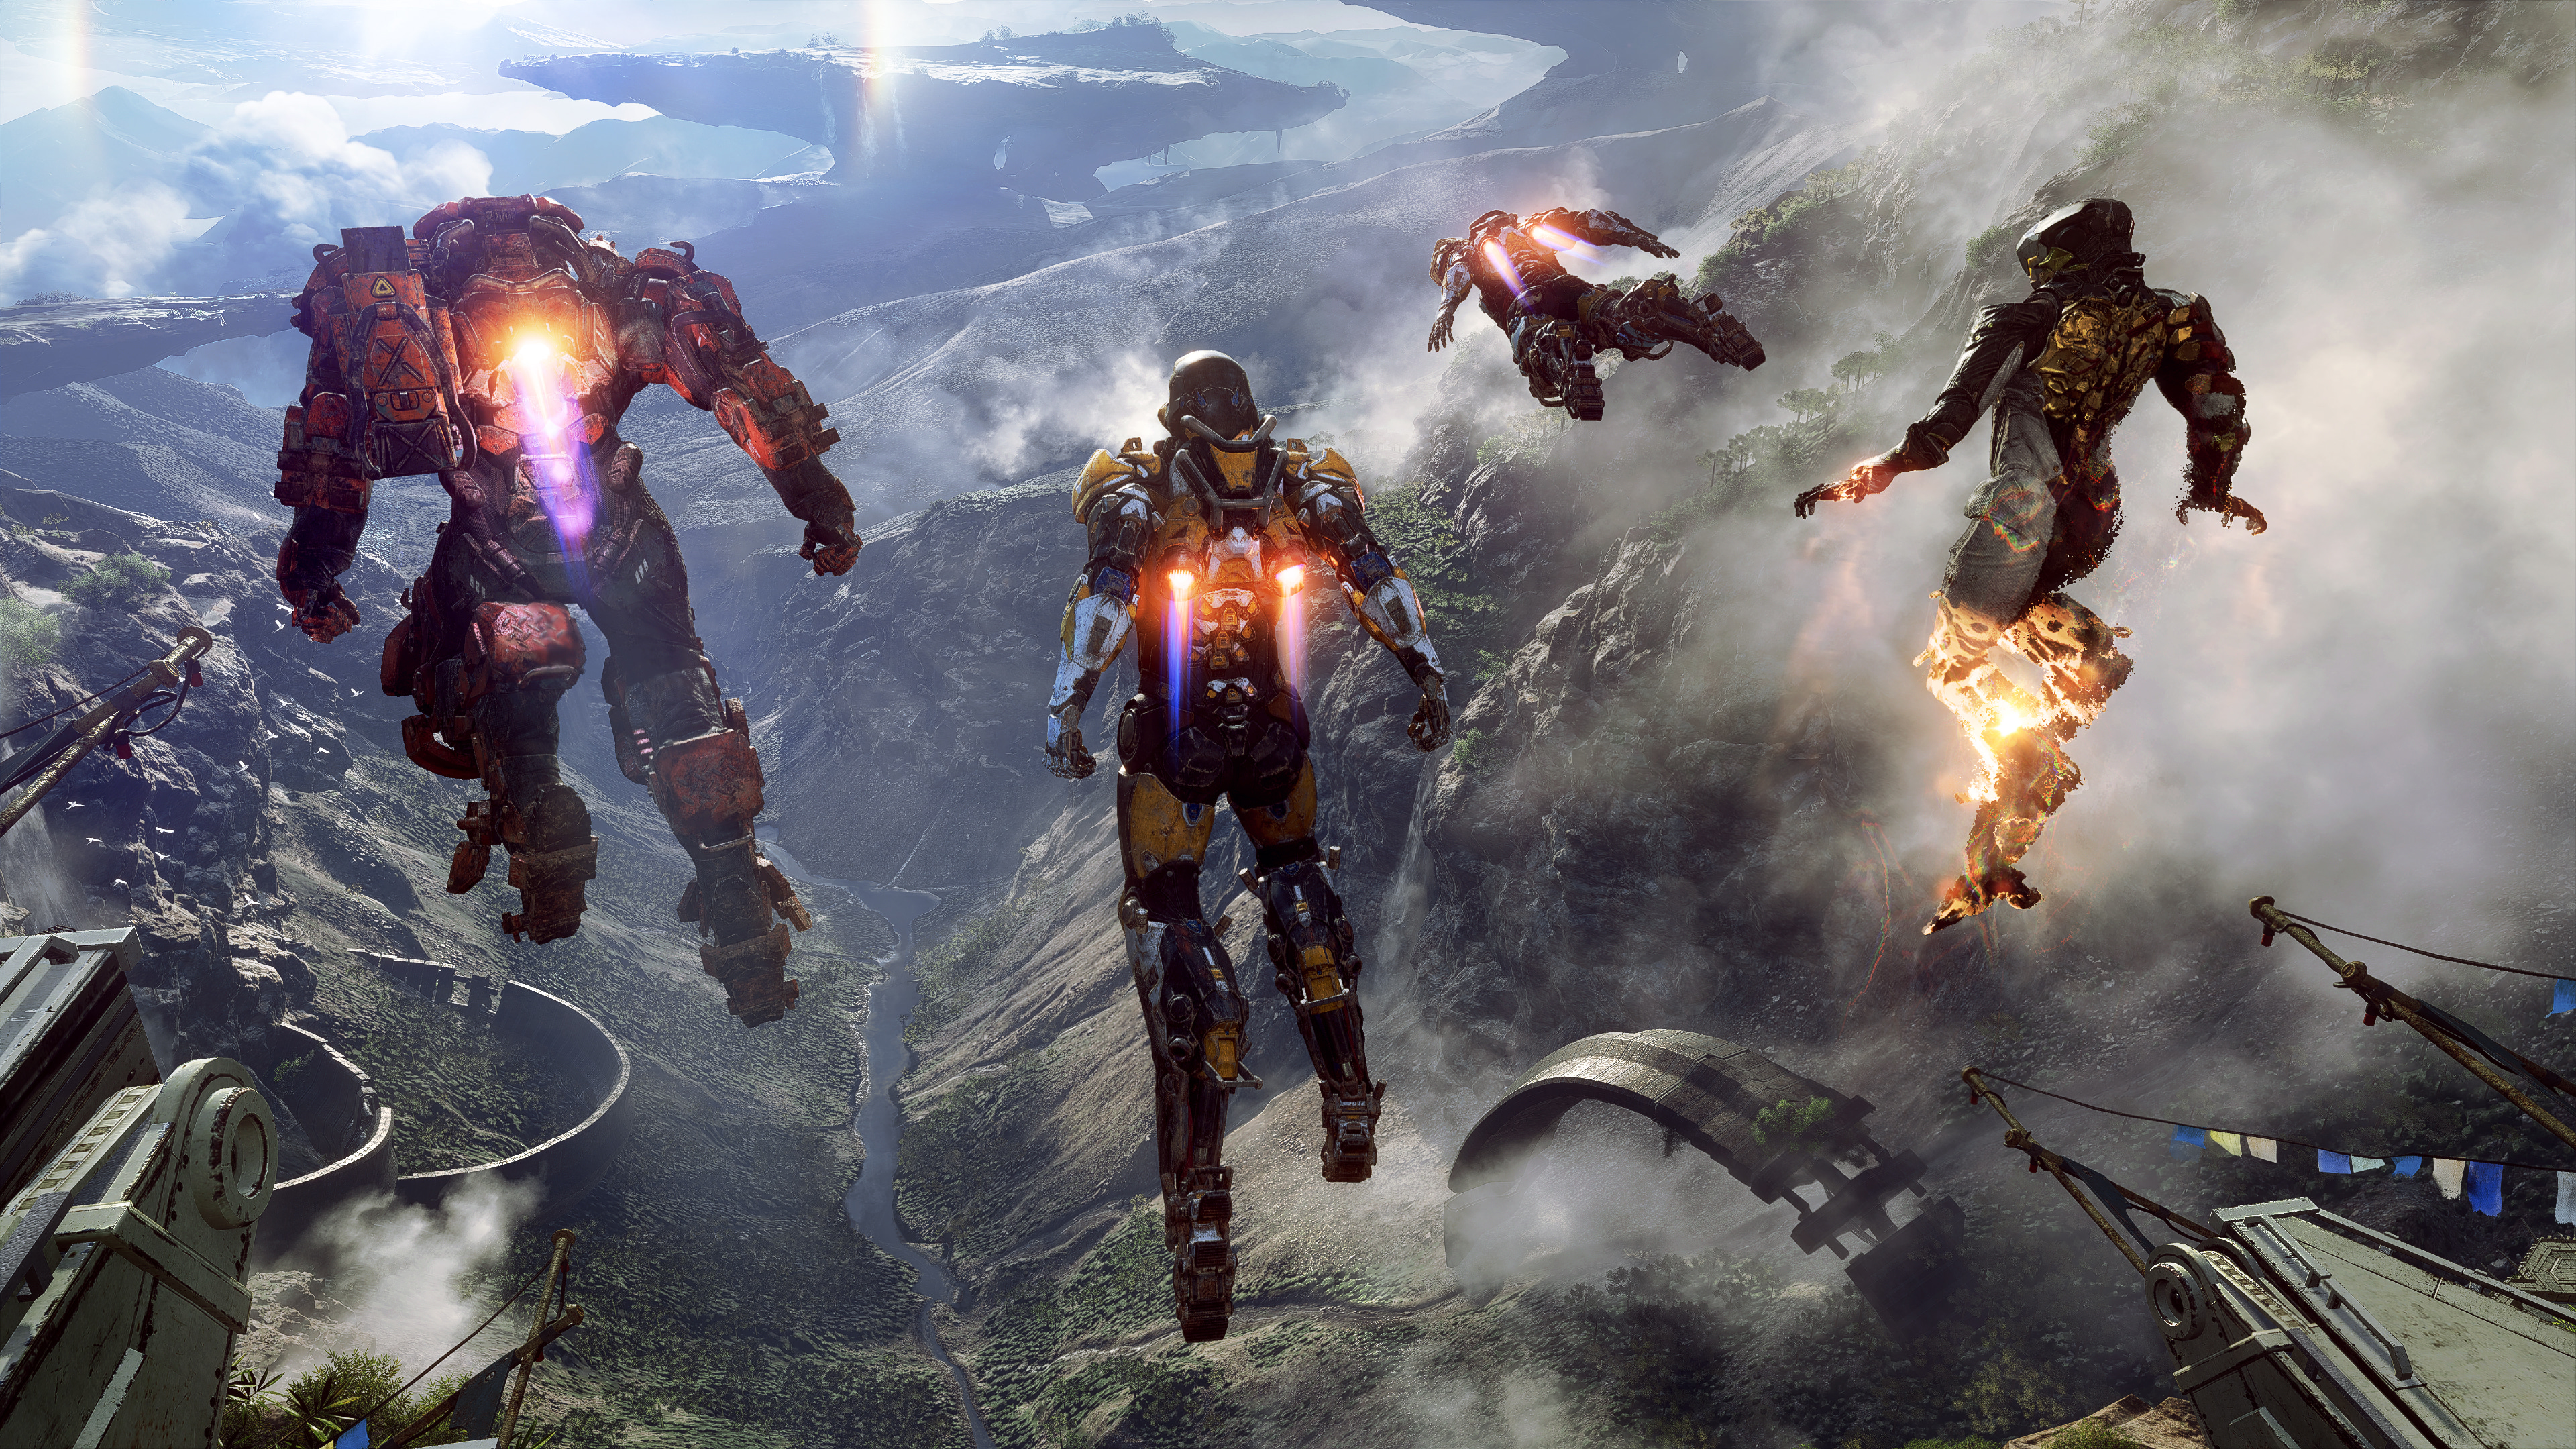 Anthem 4k hd games 4k wallpapers images backgrounds - 4k wallpapers games ...